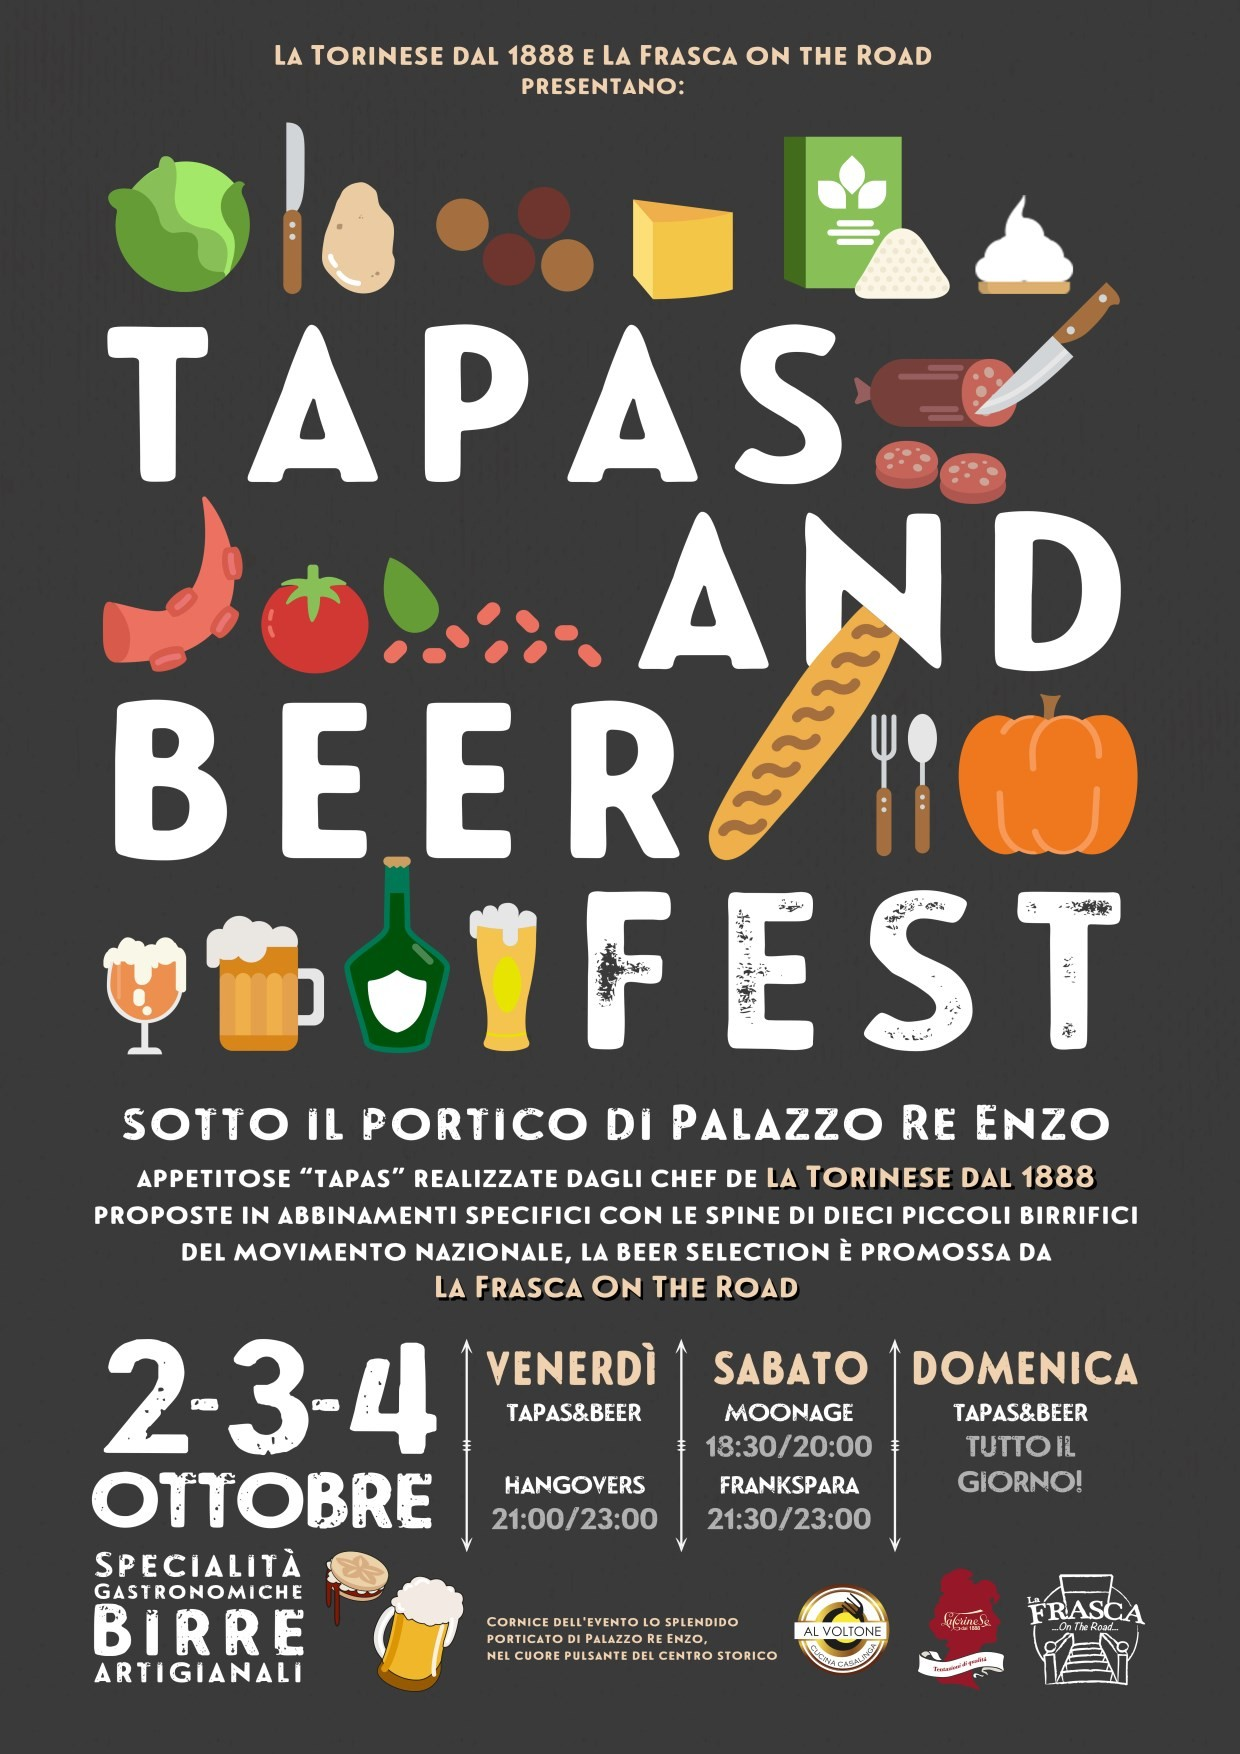 Tapas and beer fest